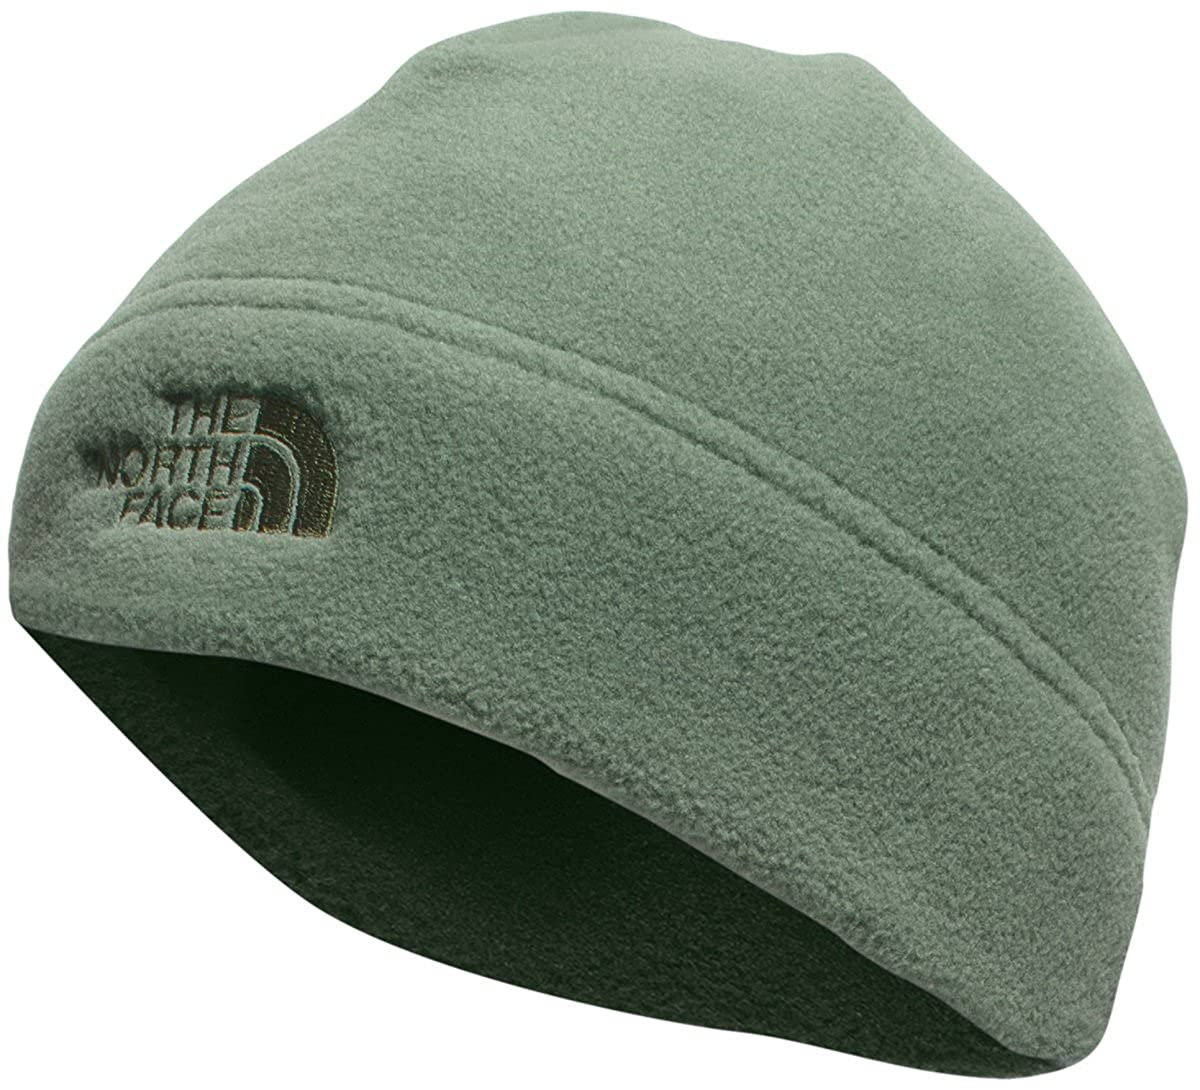 The North Face Standard Issue Beanie 2014 Small ダークグリーン B019WO3CNQ